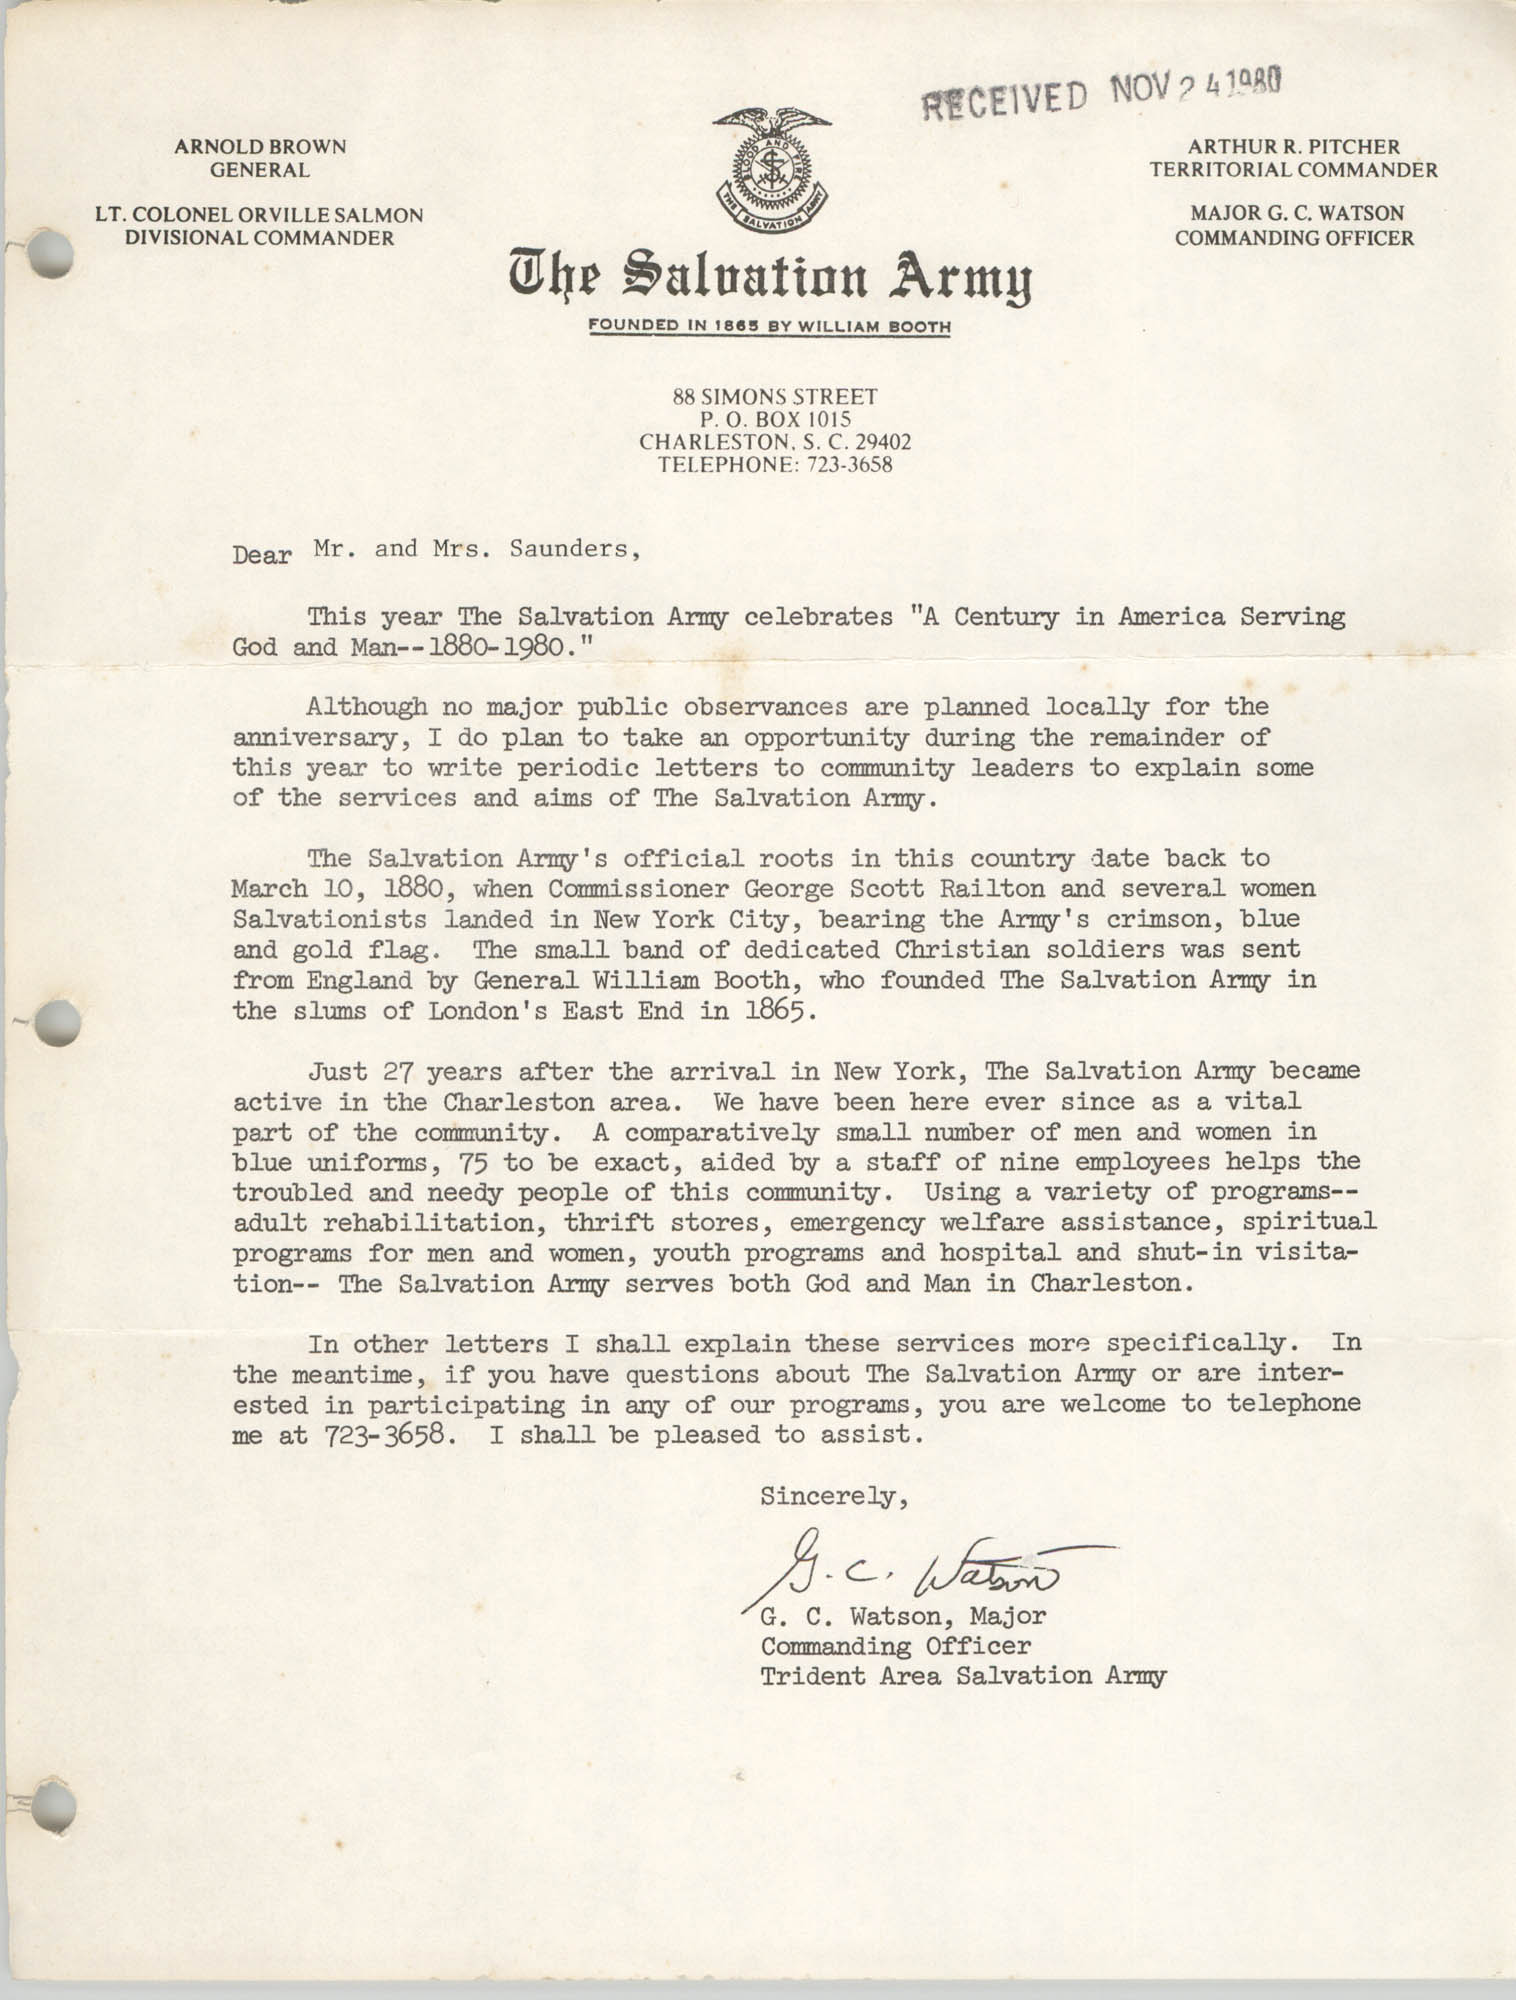 Letter from G. C. Watson to William Saunders, November 24, 1980